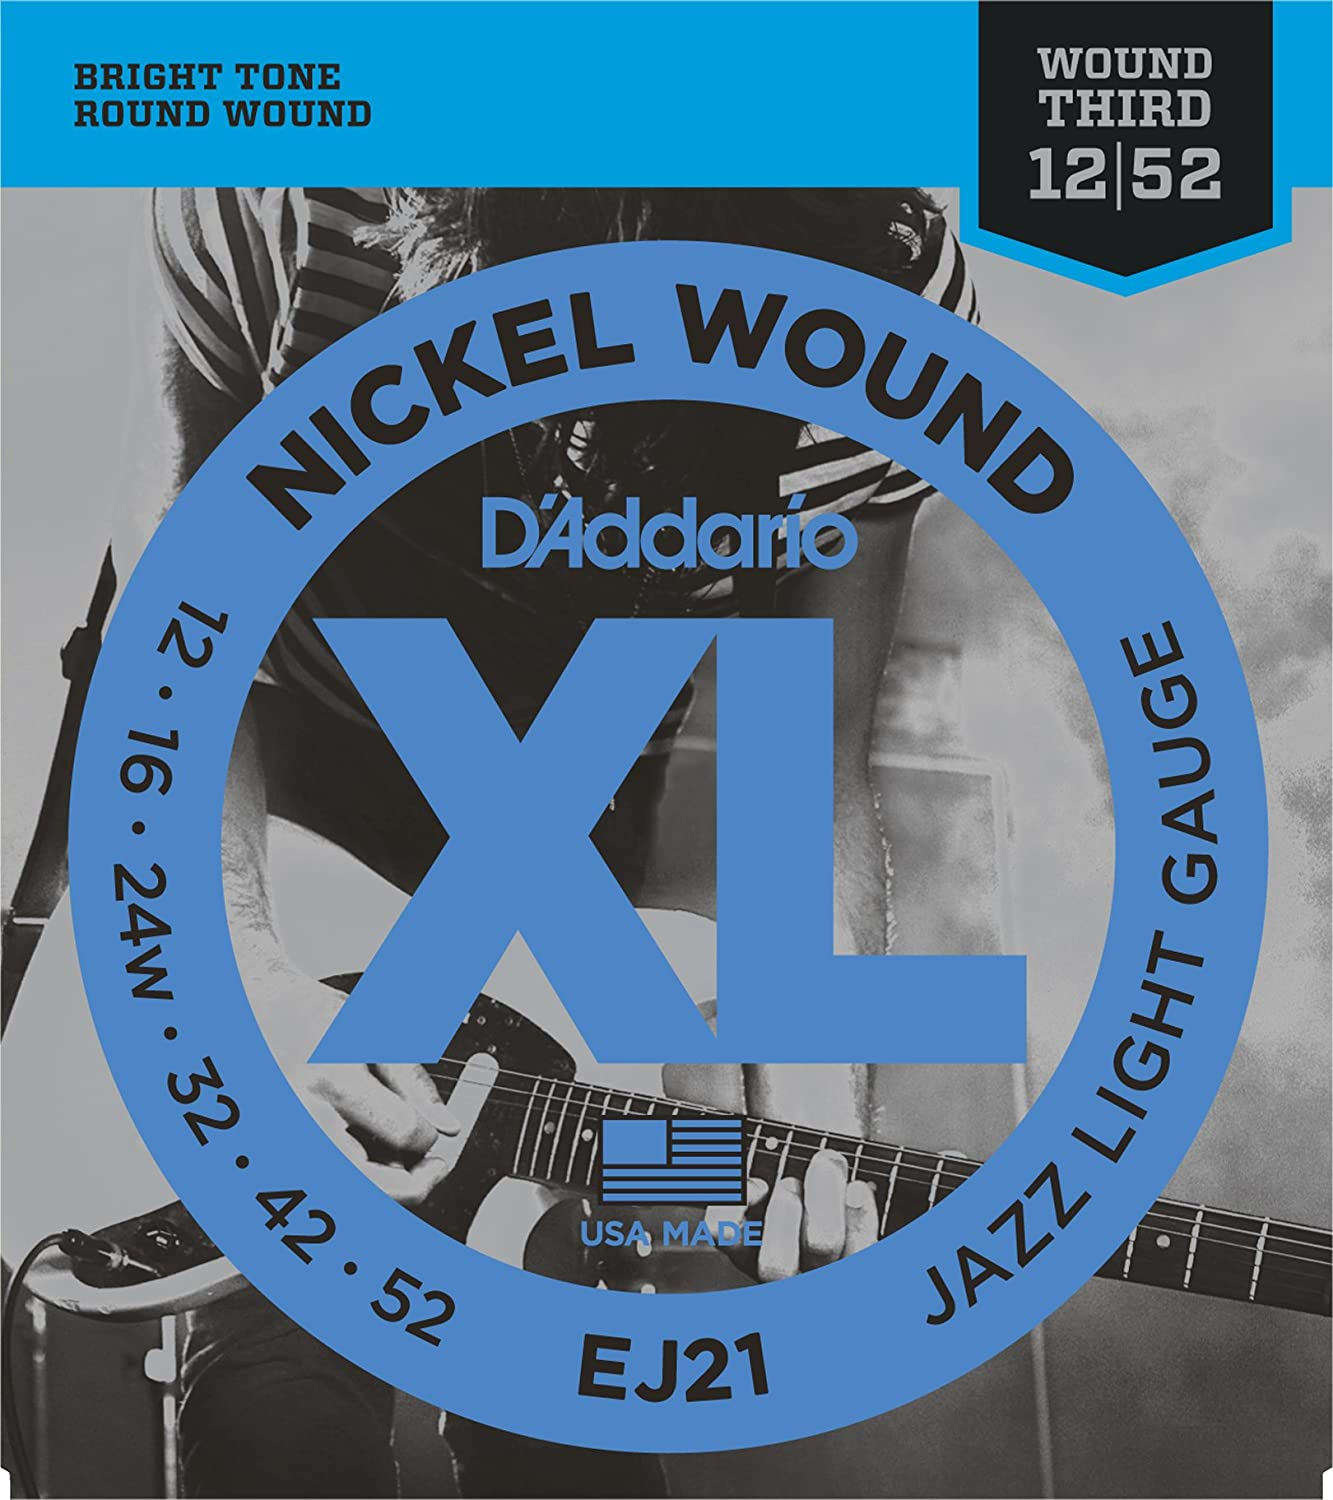 d addario ej21 xl nickel wound jazz light 012 052 wound 3rd